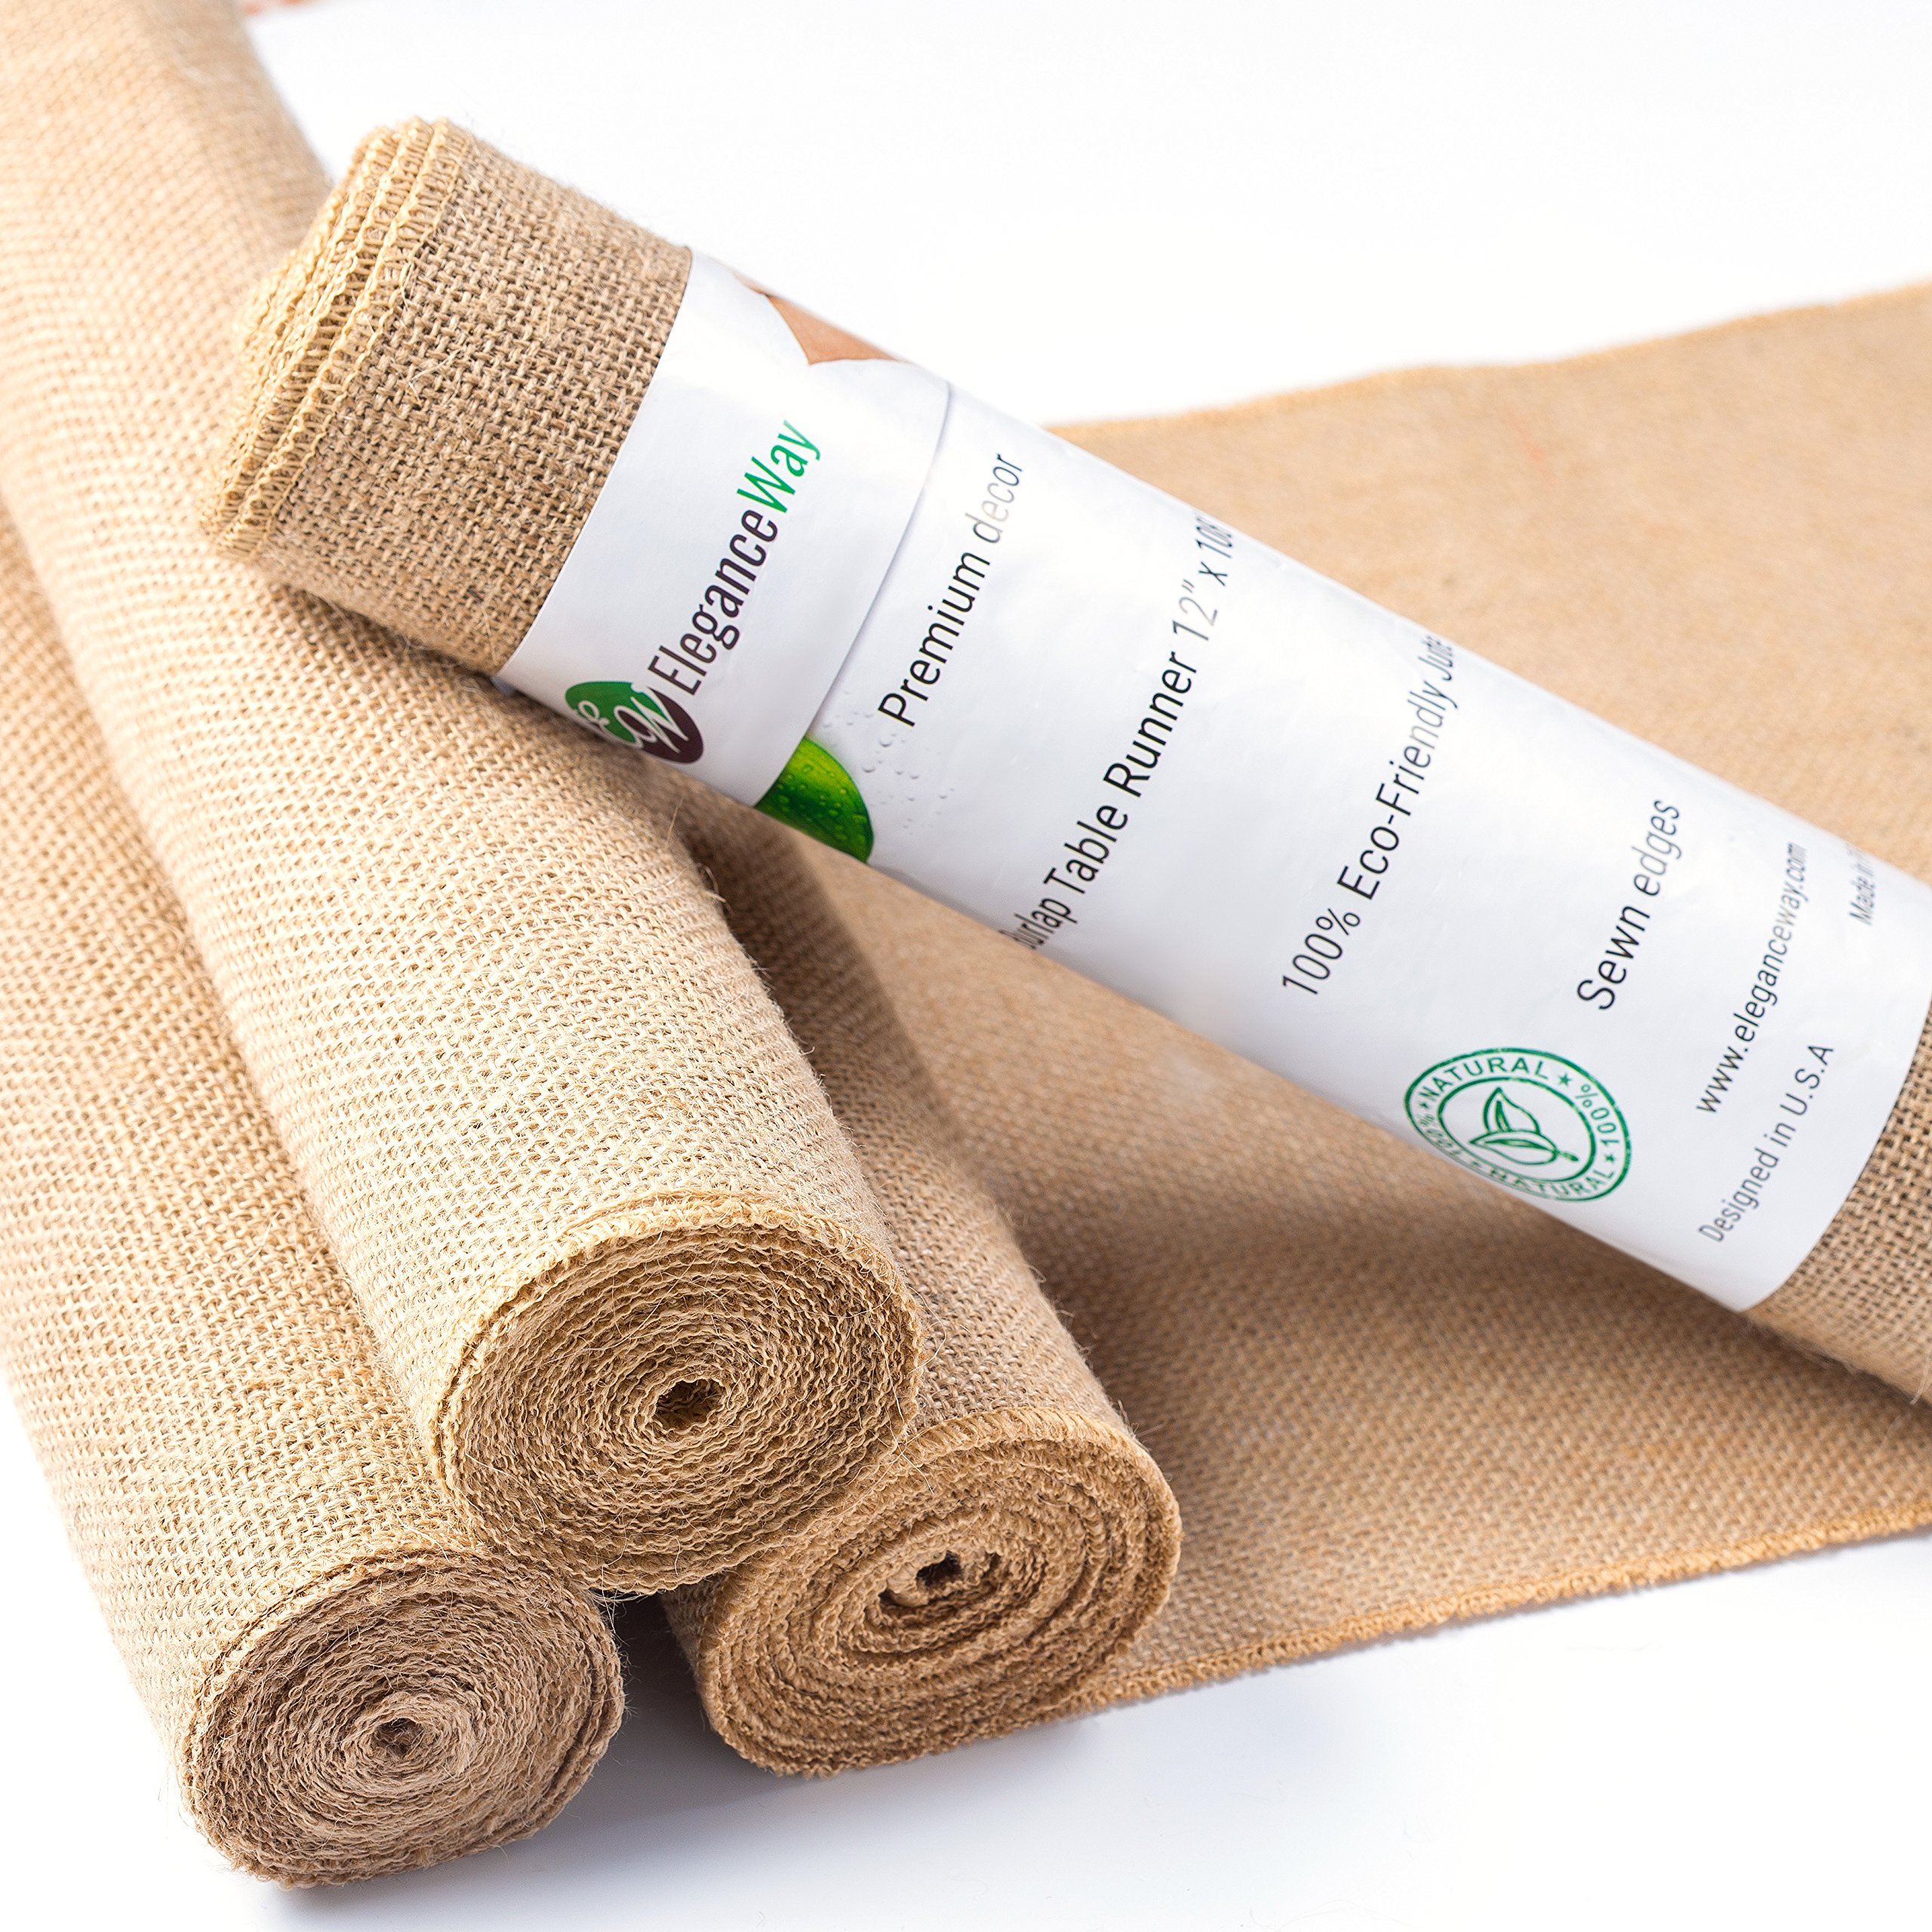 Burlap Table Runner 108 Inches Long   Rustic Wedding Table Runner  Decoration   Dining Table Runner Roll   Kitchen Table Runner   Thanksgiving  Easter Baby ...